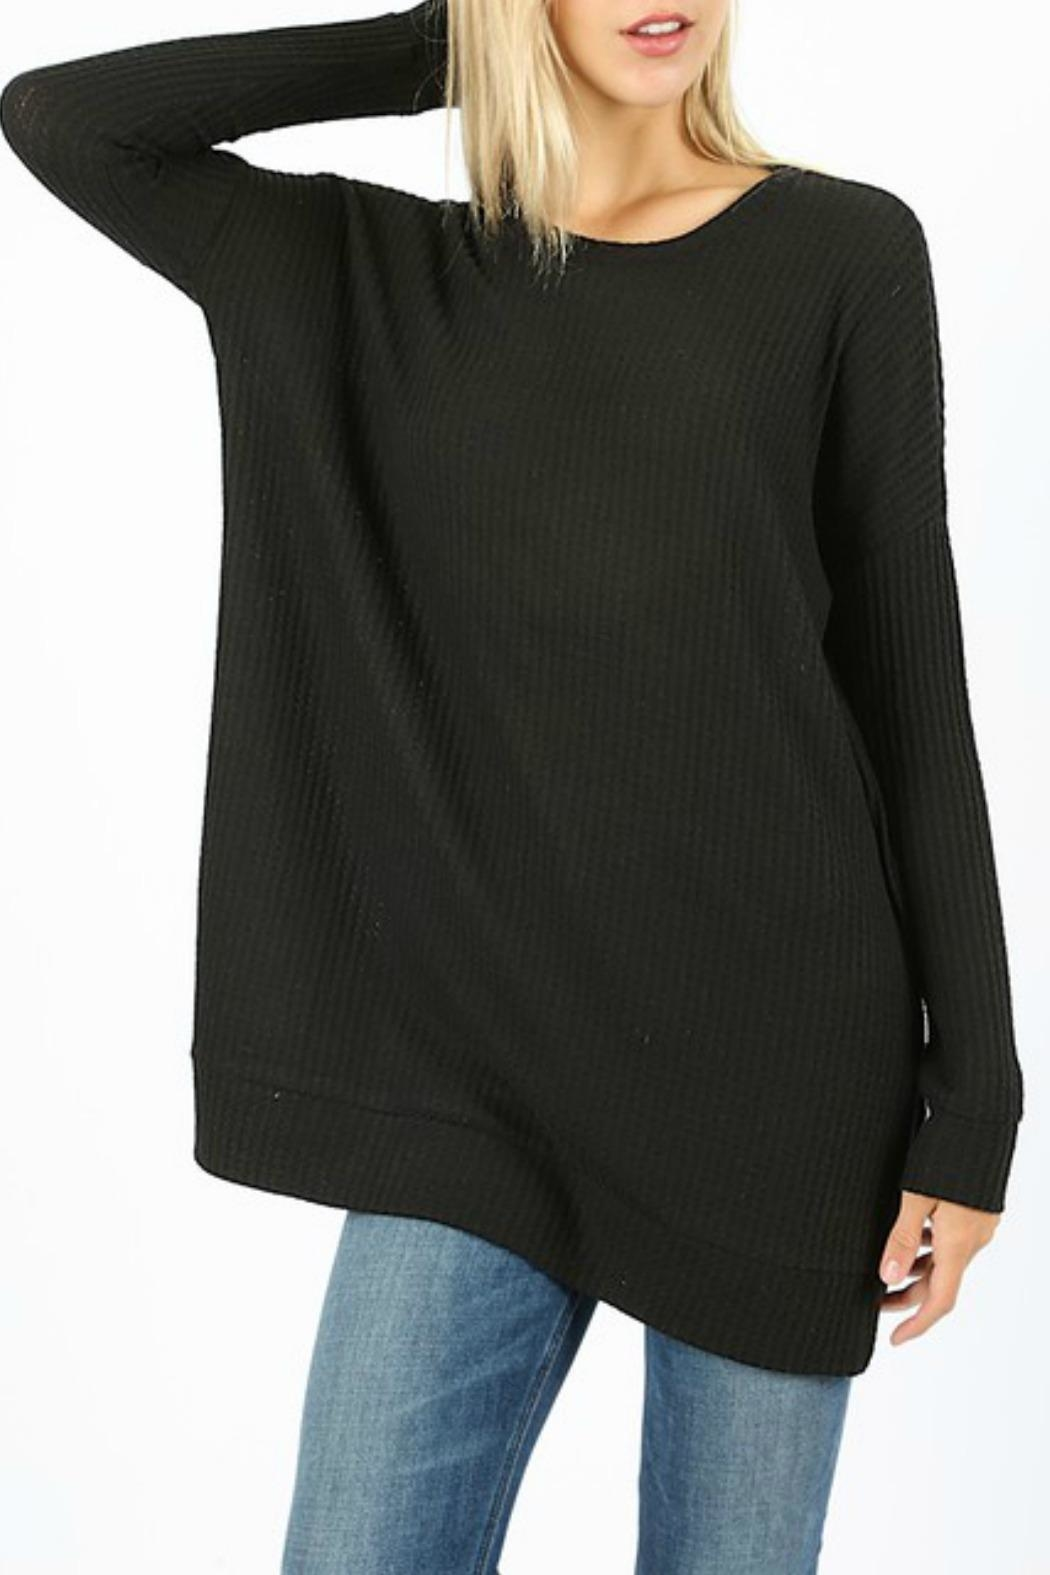 Zenana Outfitters Jannie Thermal Top - Front Cropped Image